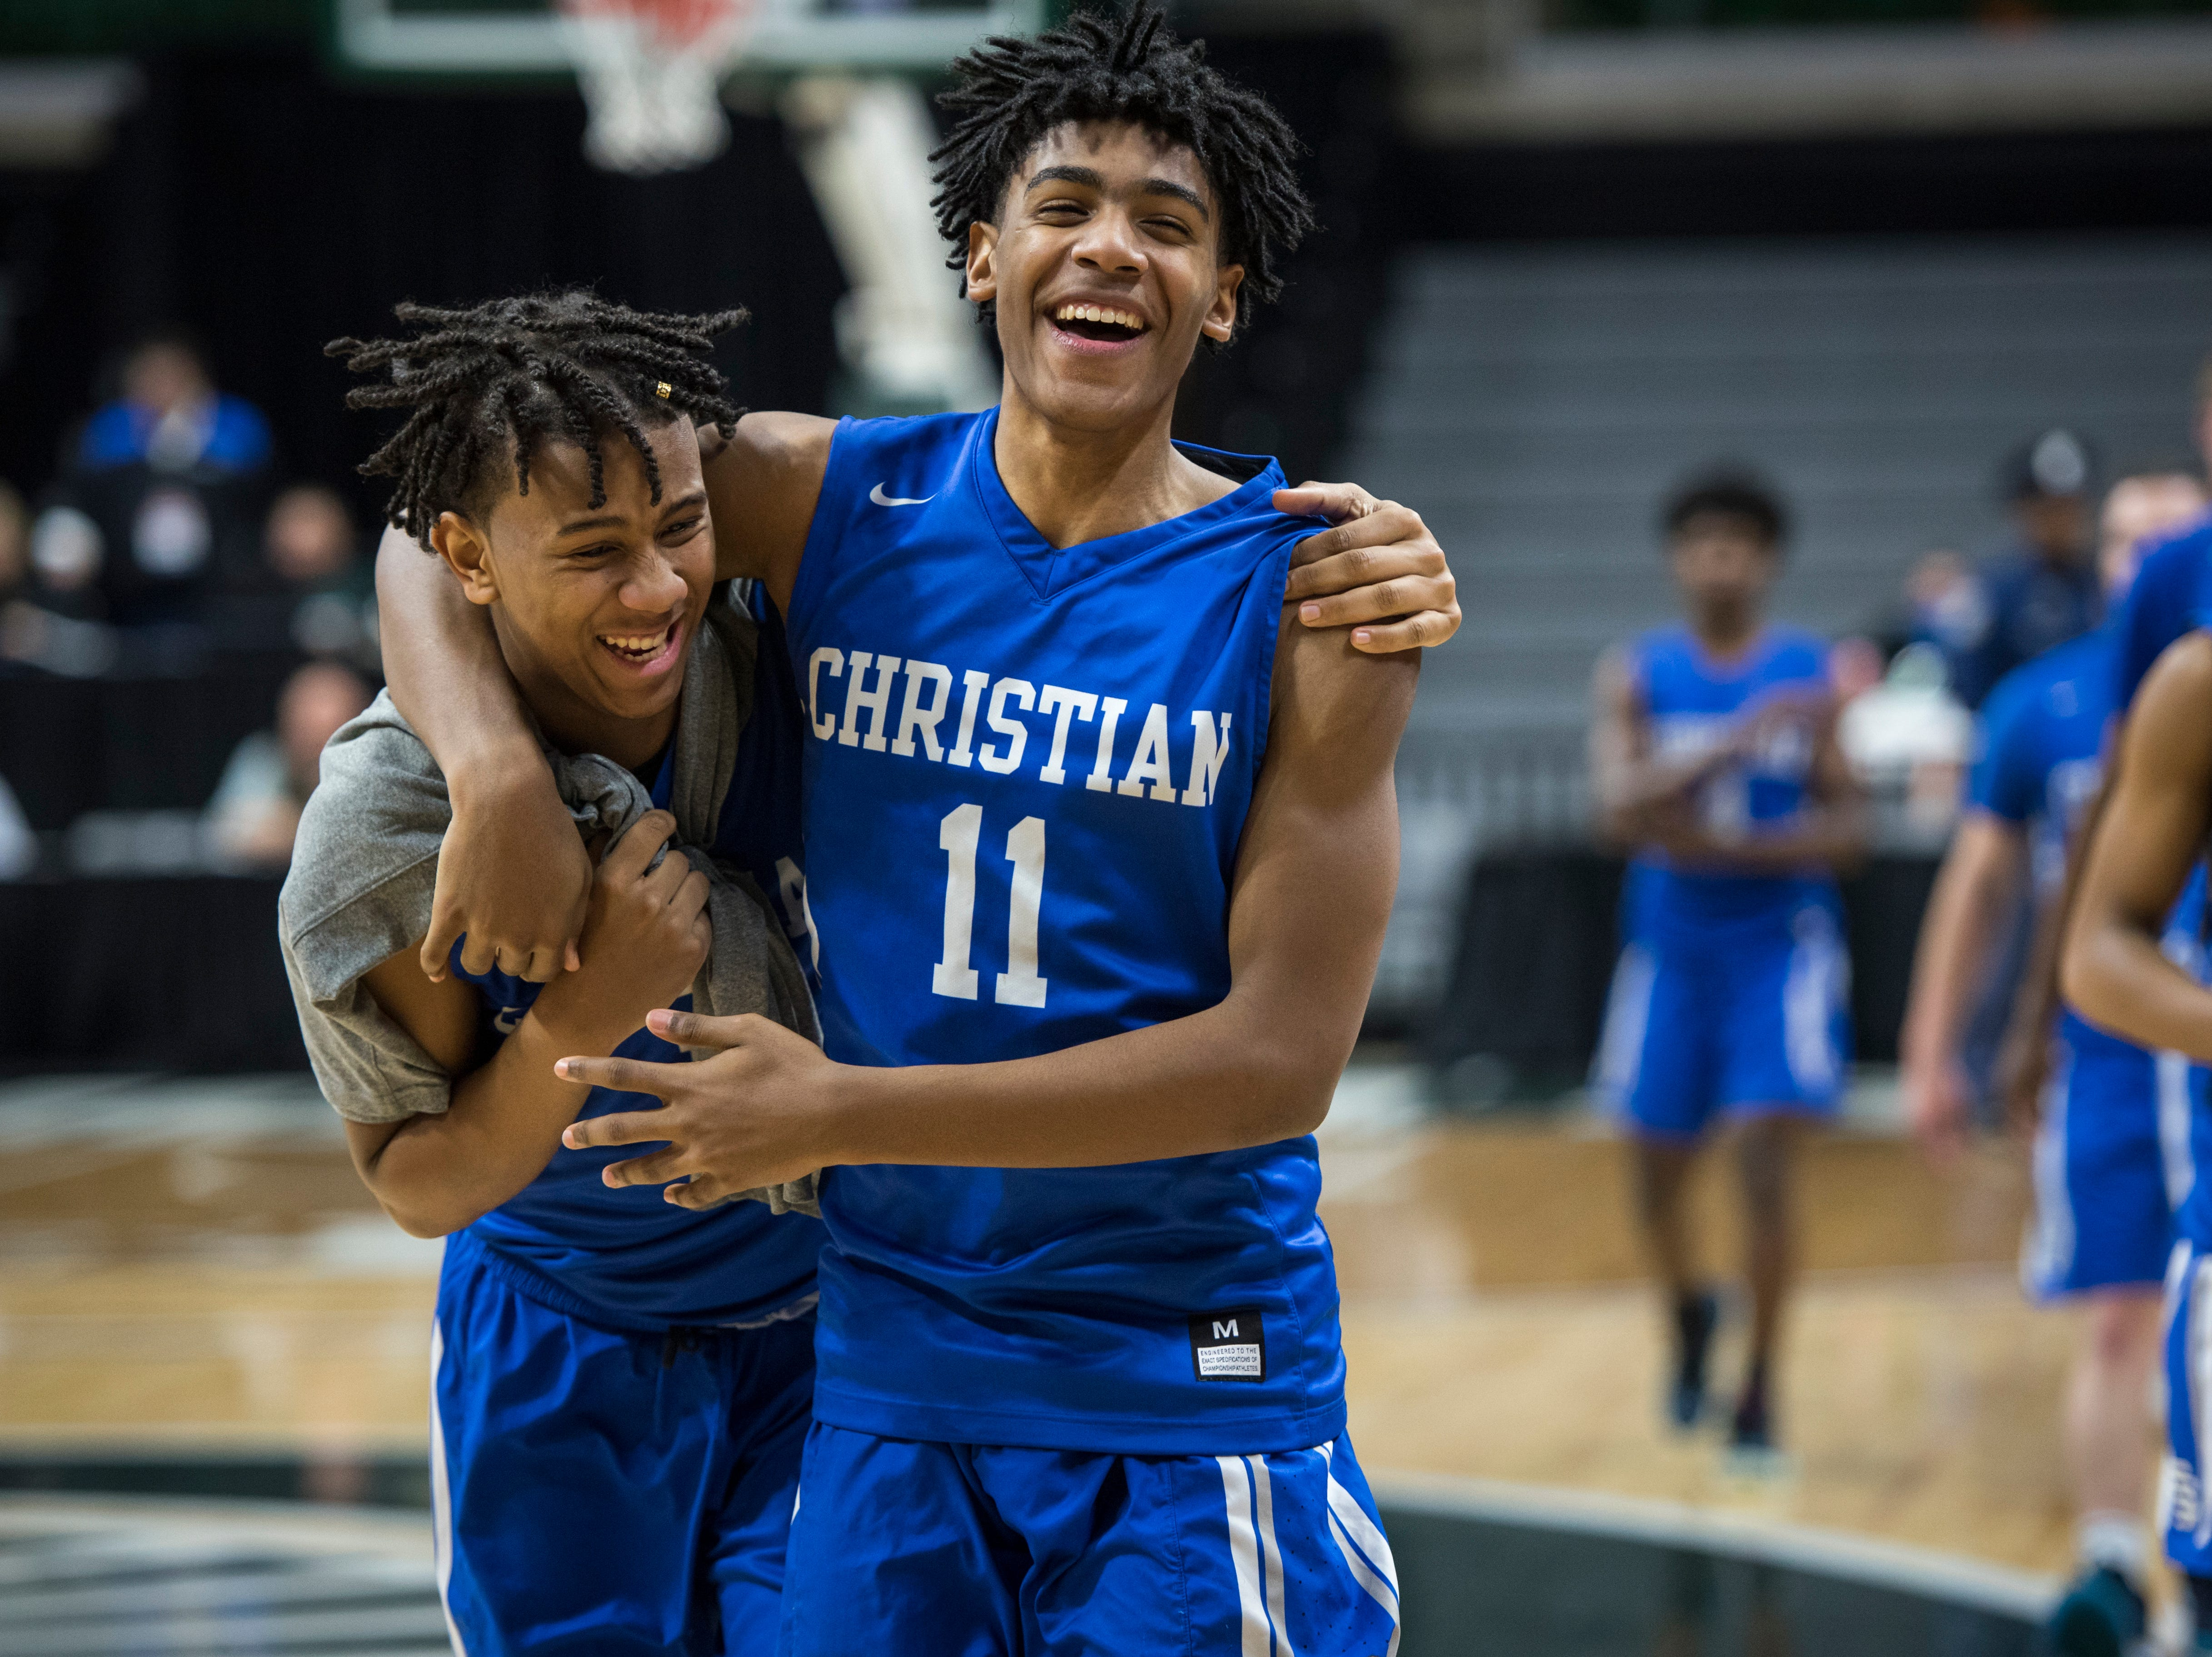 Southfield Christian's Tarron Carter, left, and Southfield Christian's Malcolm King celebrate their win after the game.